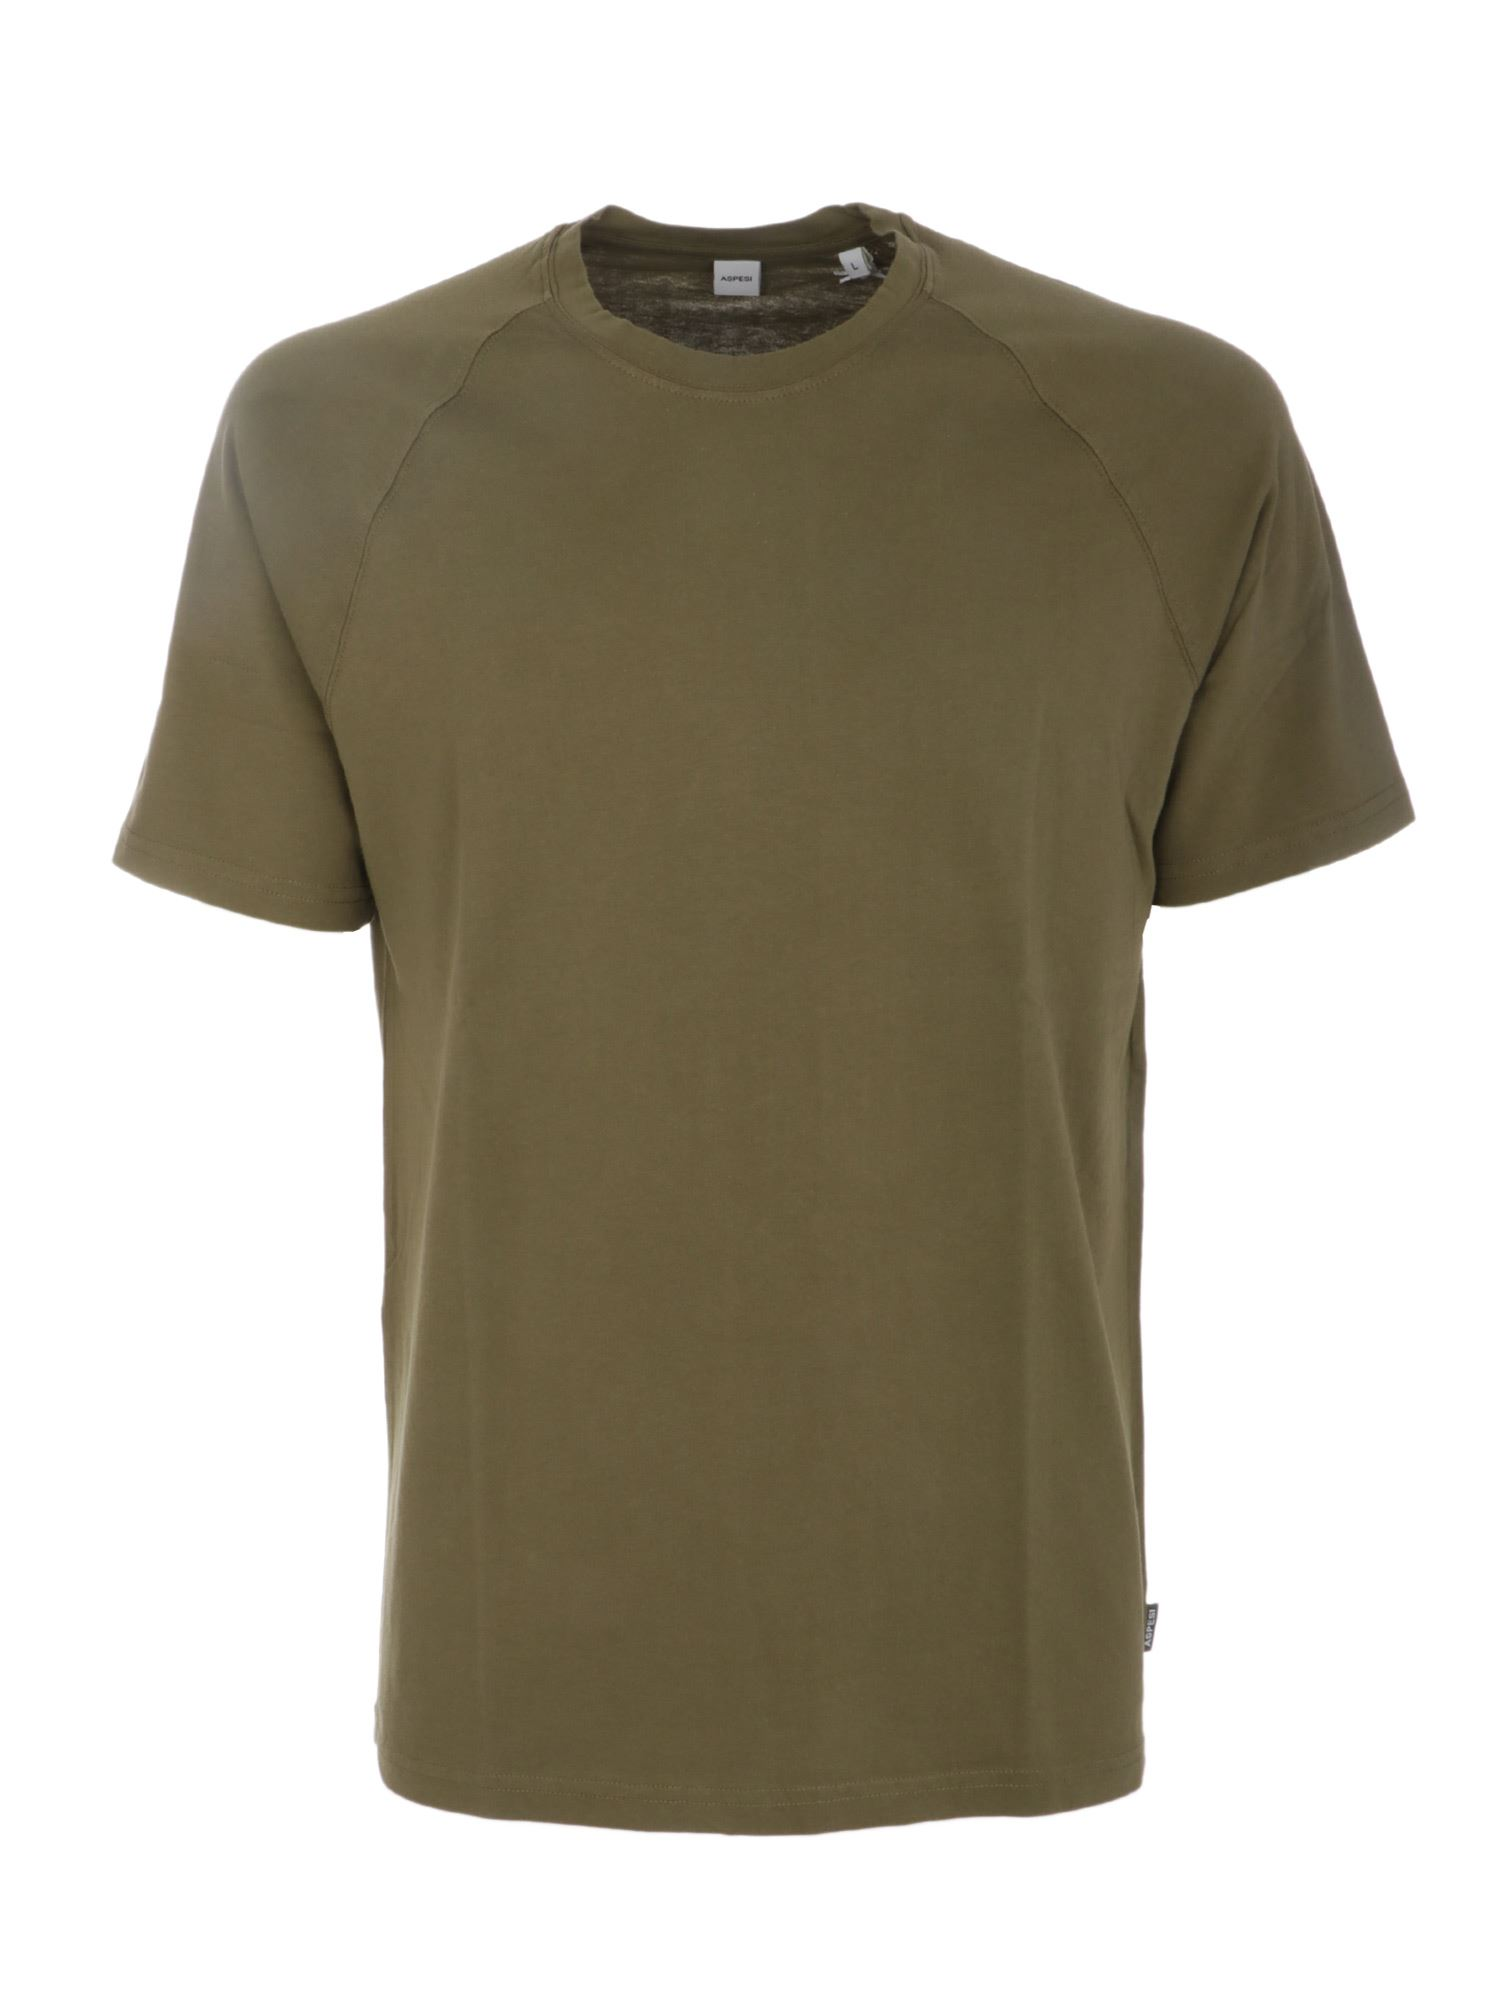 Aspesi LOGO LABEL T-SHIRT IN GREEN